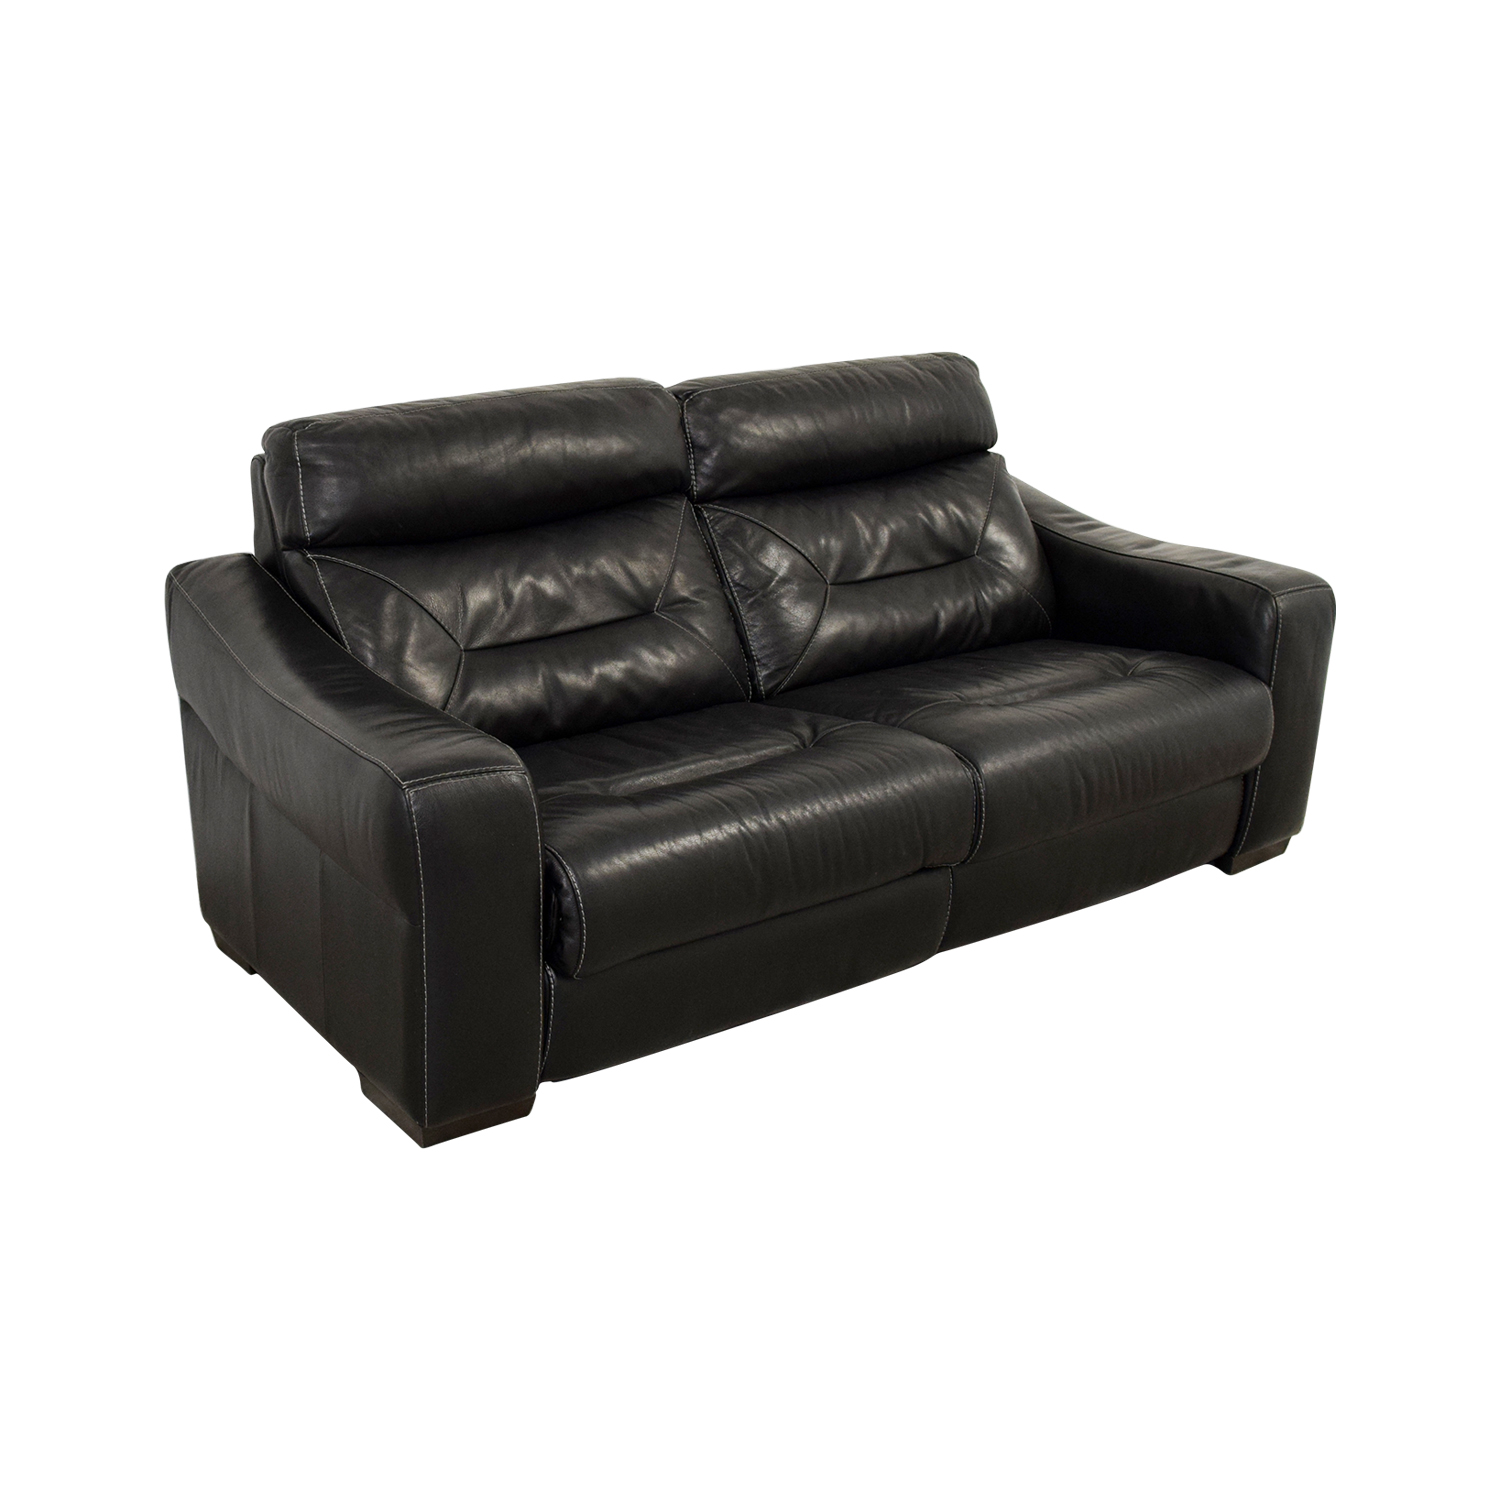 macy s furniture sofa tables french provencial 54% off - macy's black leather recliner / chairs